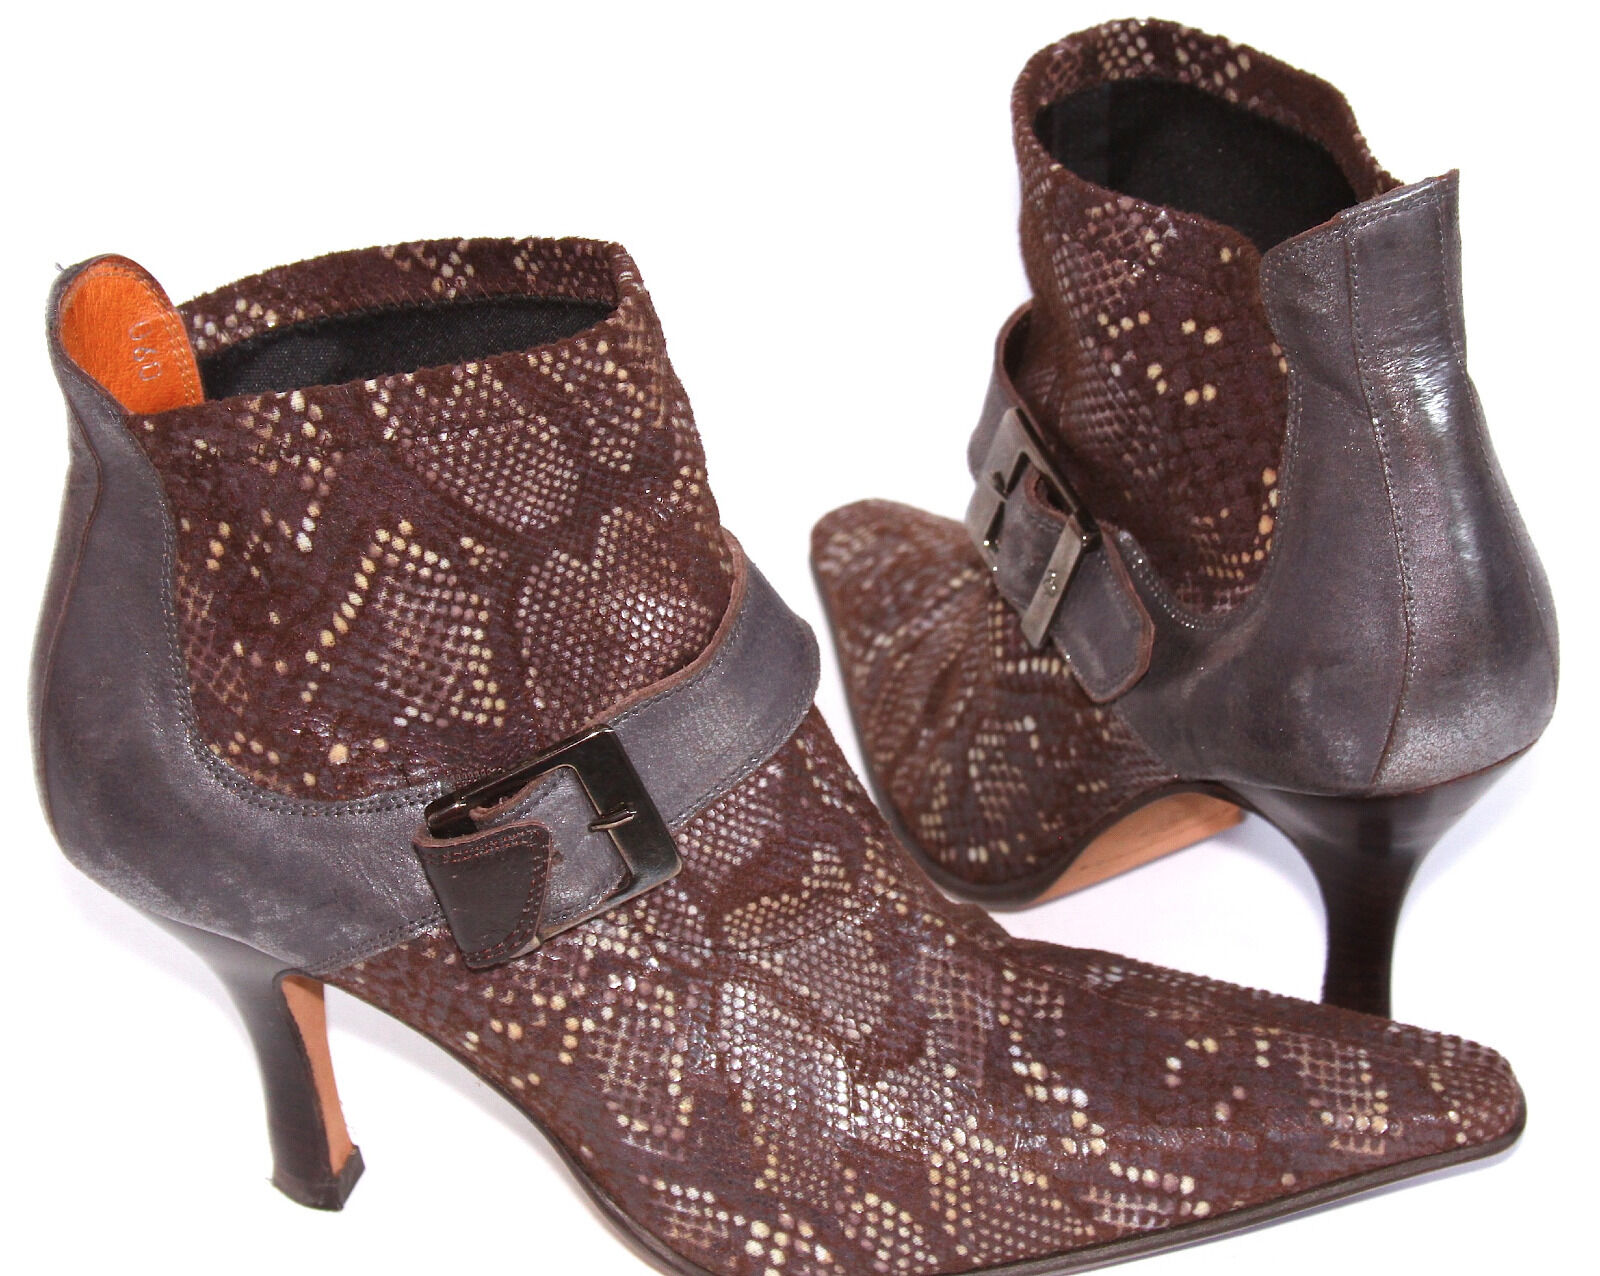 DONALD J. PLINER Suede Reptile Pull On Ankle Boots w  Pewter Metallic Leather 6M